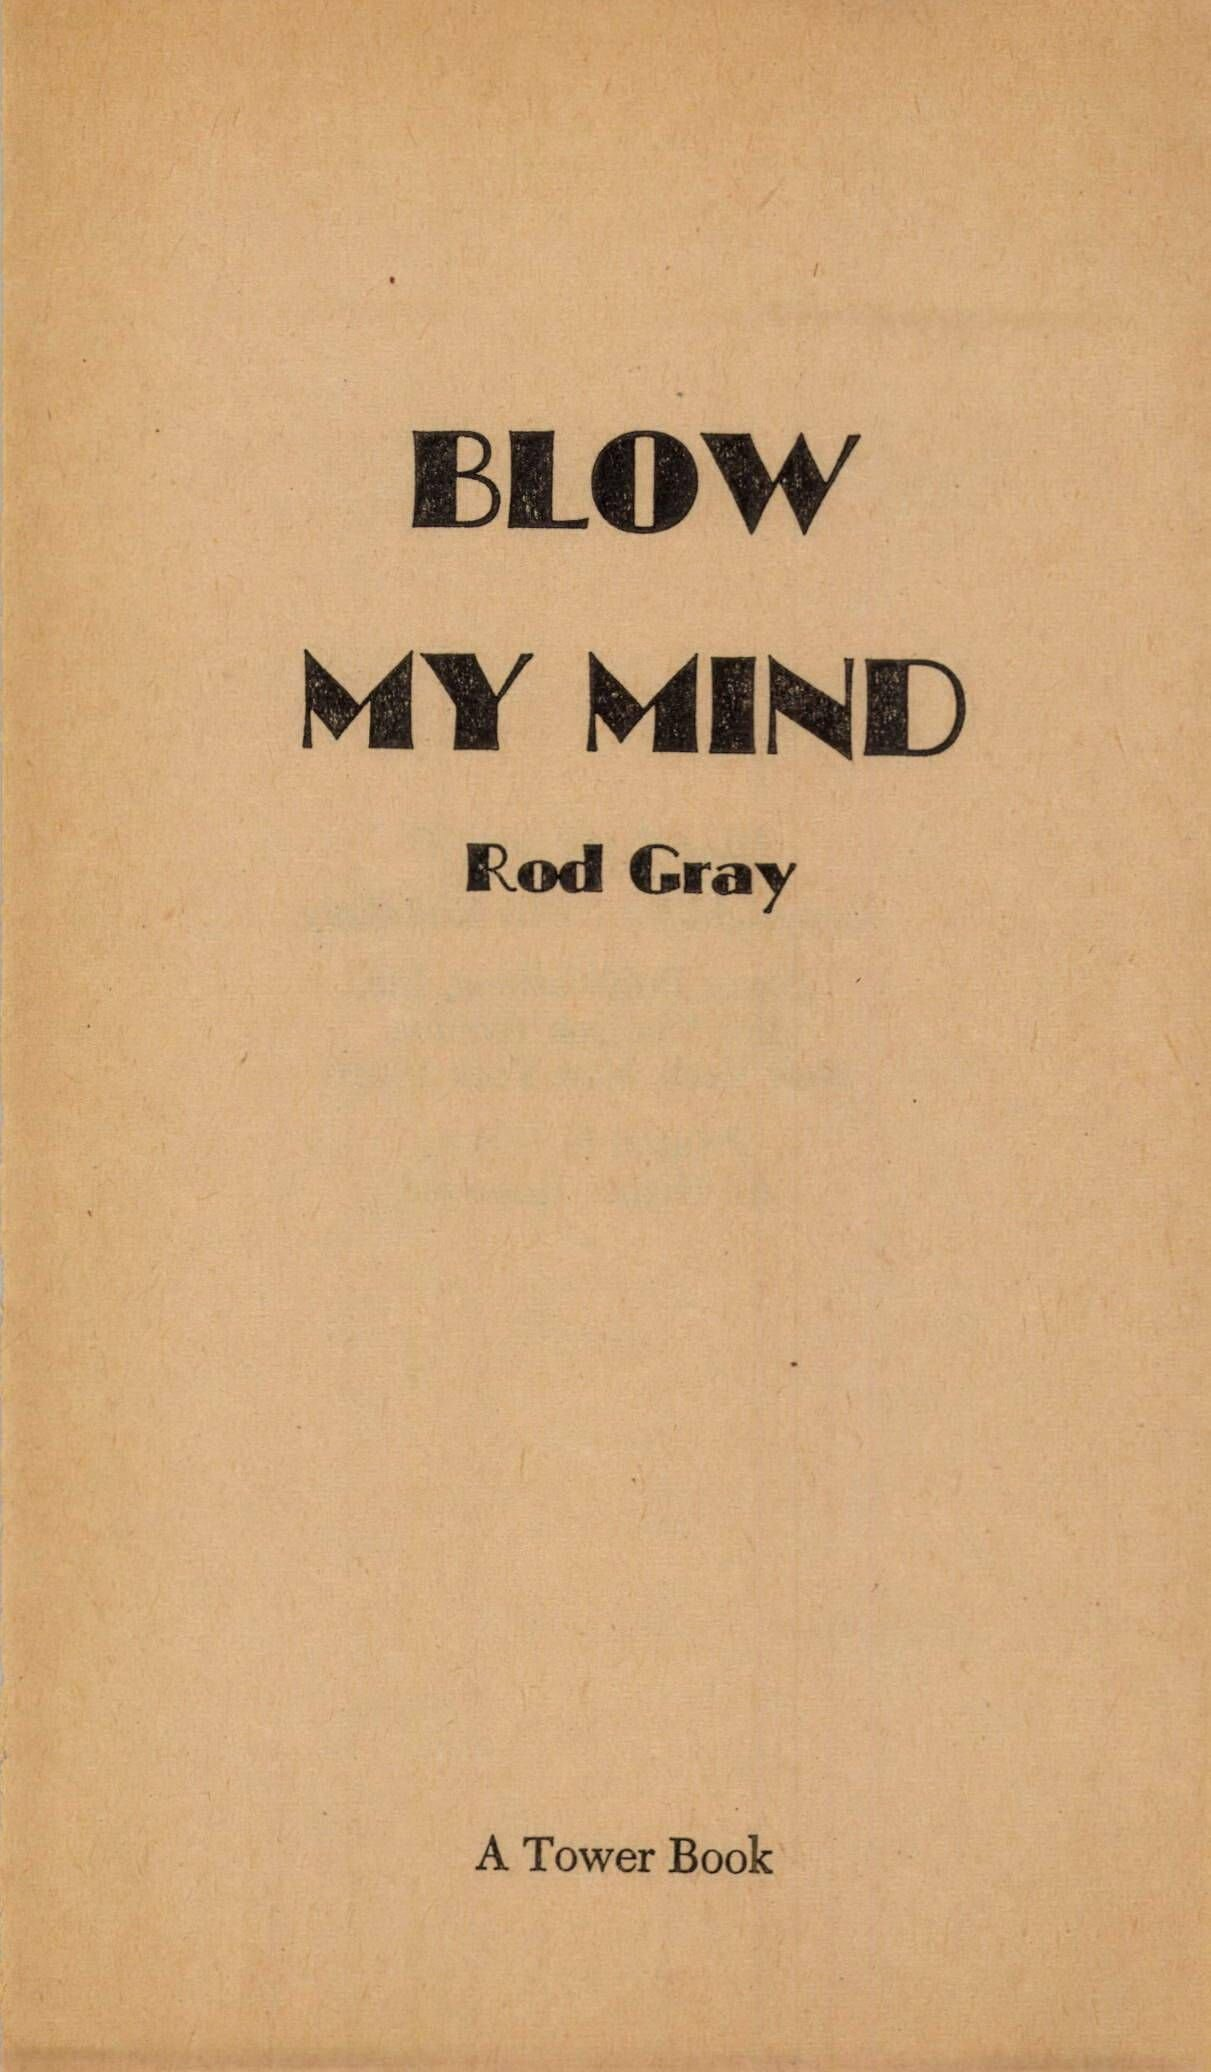 078 Blow My Mind Lady LUST Gardner F Fox Rod Gray 003.jpg